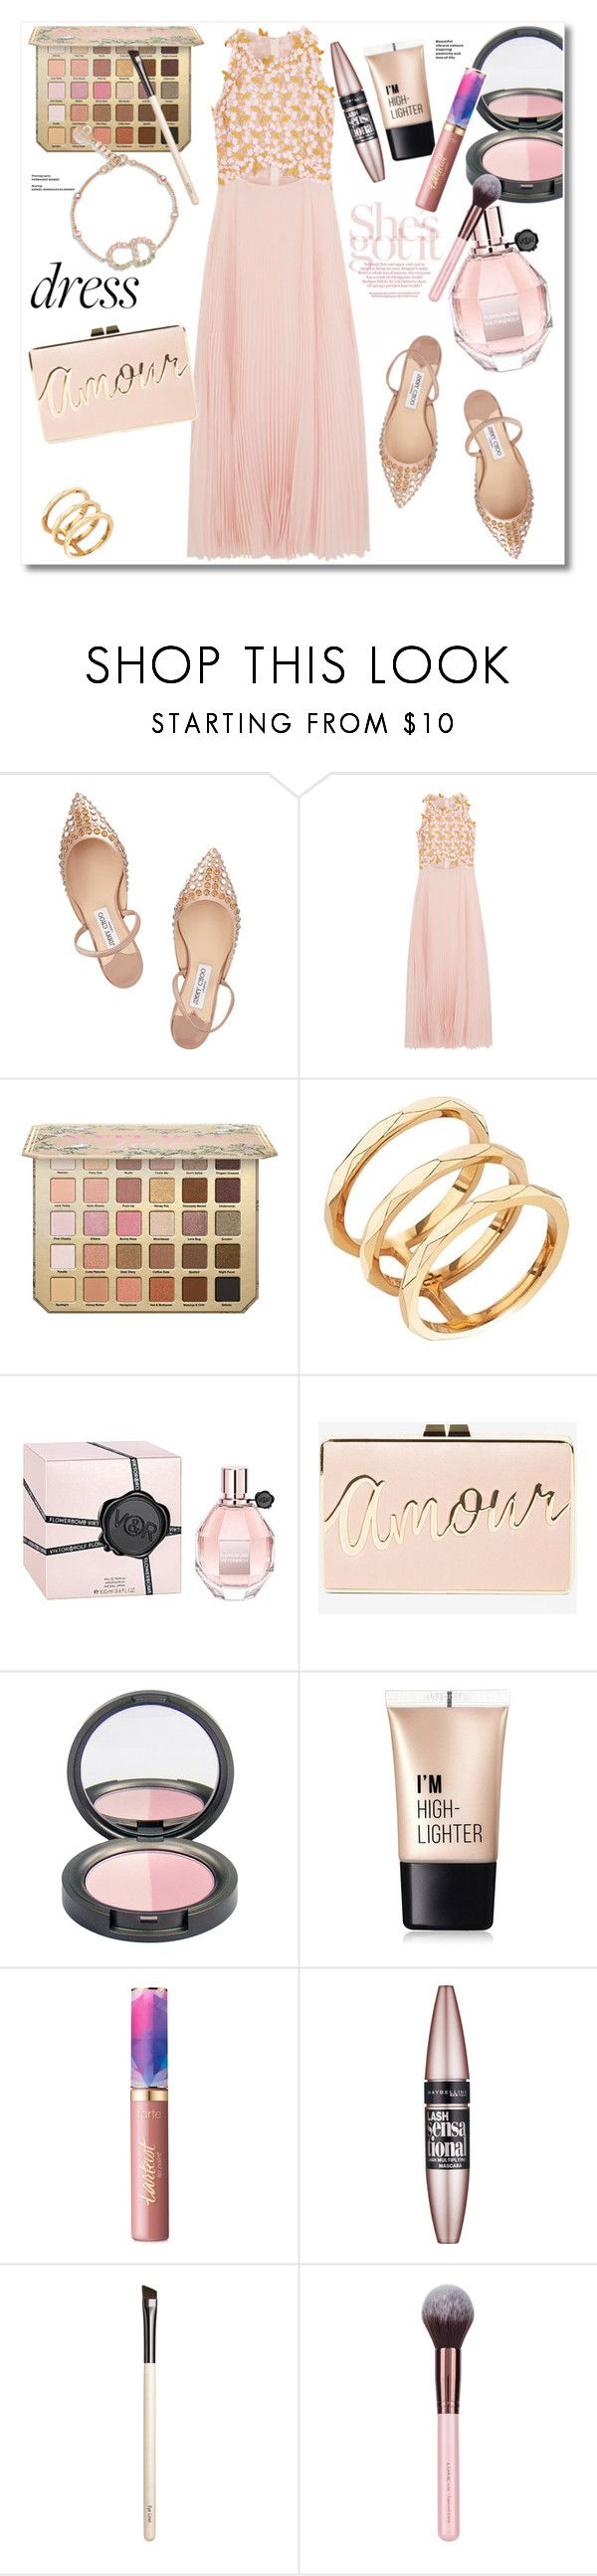 """""""Get the look"""" by vkmd ❤ liked on Polyvore featuring Jimmy Choo, Giambattista Valli, Edge of Ember, Viktor & Rolf, BCBGMAXAZRIA, Charlotte Russe, tarte, Maybelline, Chantecaille and dreamydresses"""